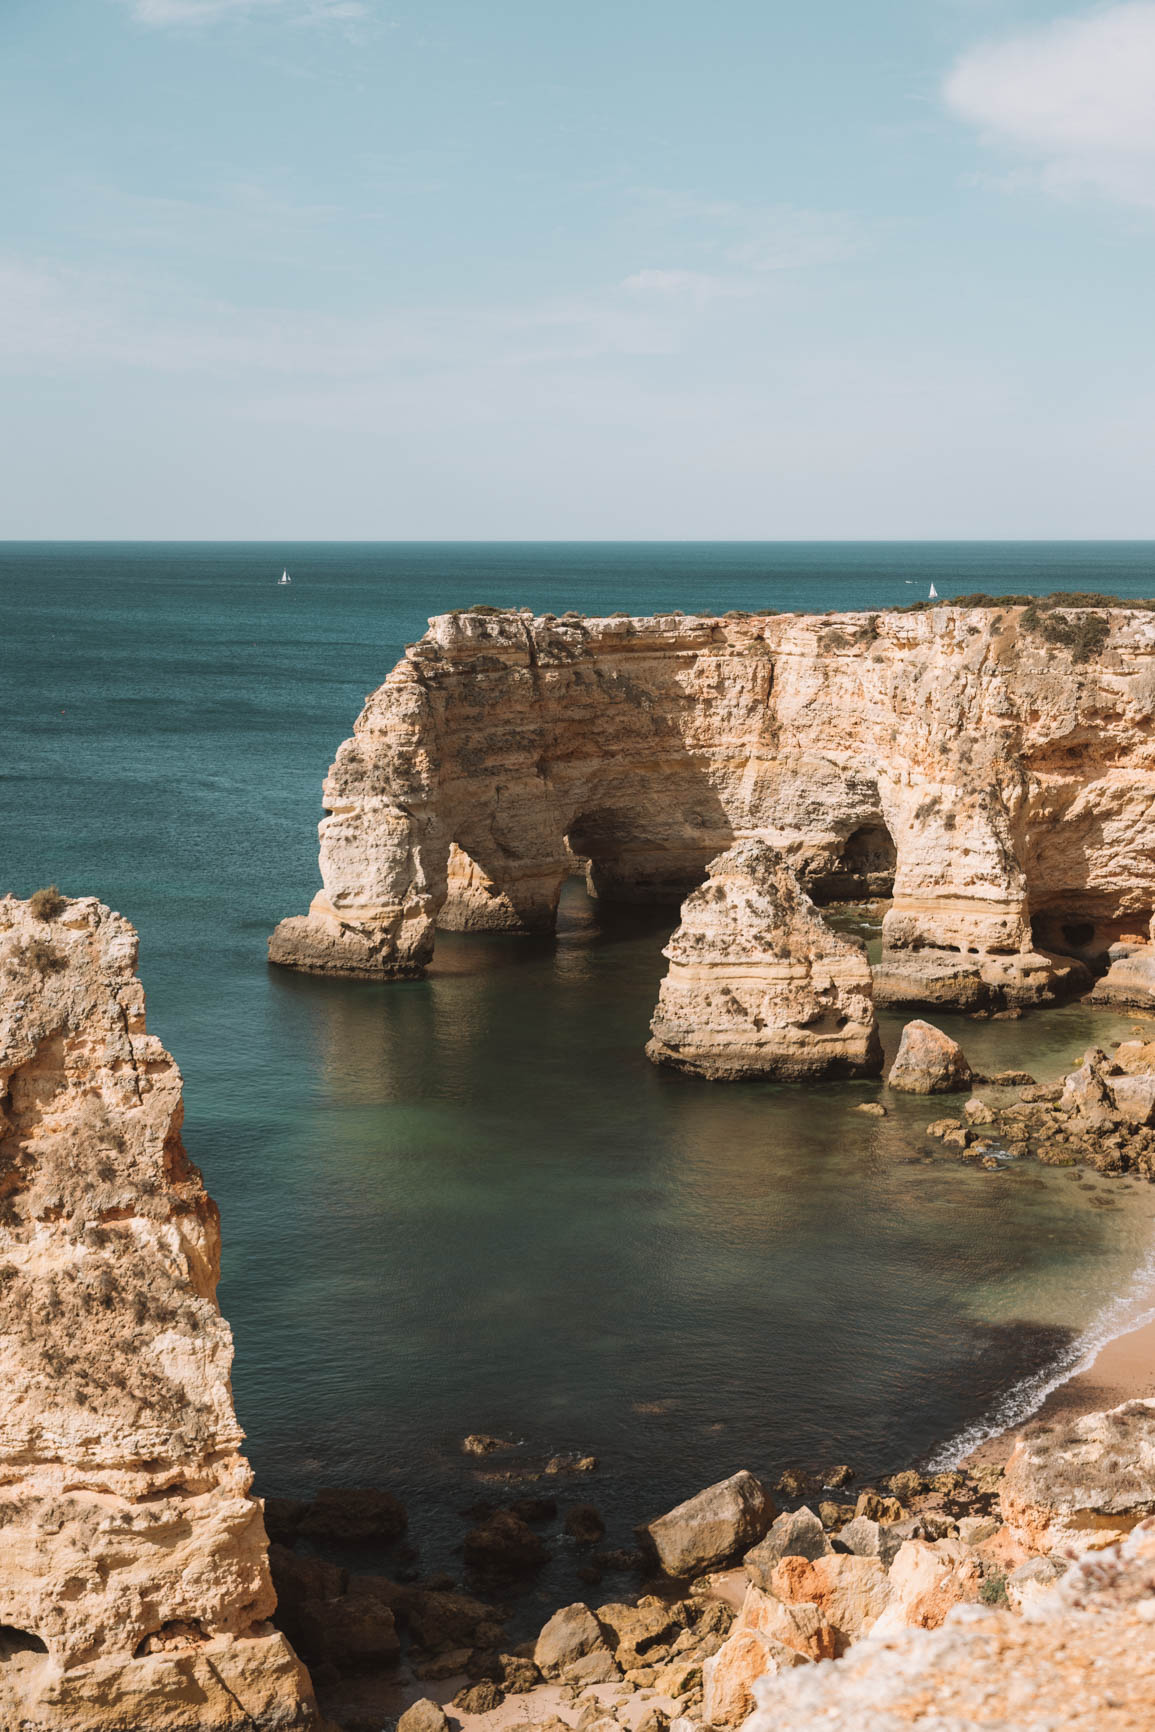 Hiking in Lagos Portugal - Your complete guide to Lagos Algarve Portugal. Everything you need to know including where to eat, where to stay, and what to do. #Portugal #Europe